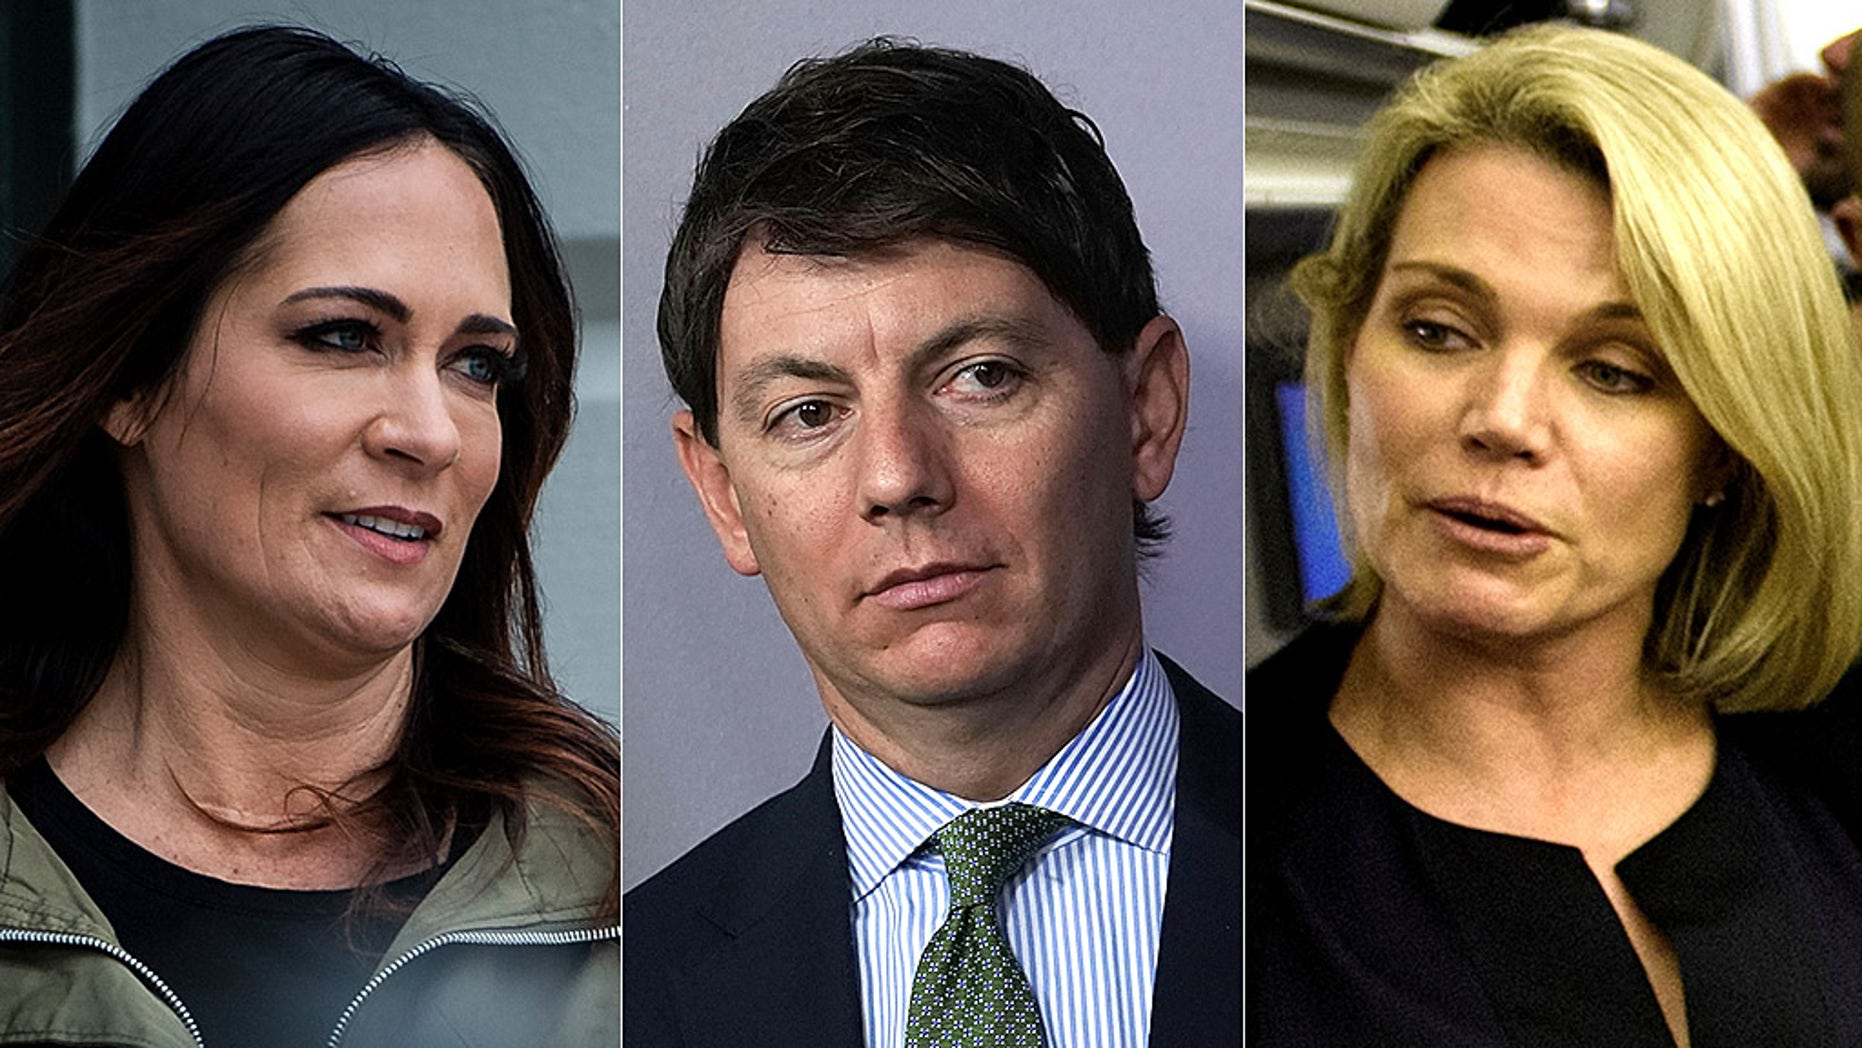 Melania Trump spokeswoman Stephanie Grisham, Deputy Press Secretary Hogan Gidley and former State Department spokesman Heather Nauert are among possible choices for White House press secretary. (Getty, Reuters).